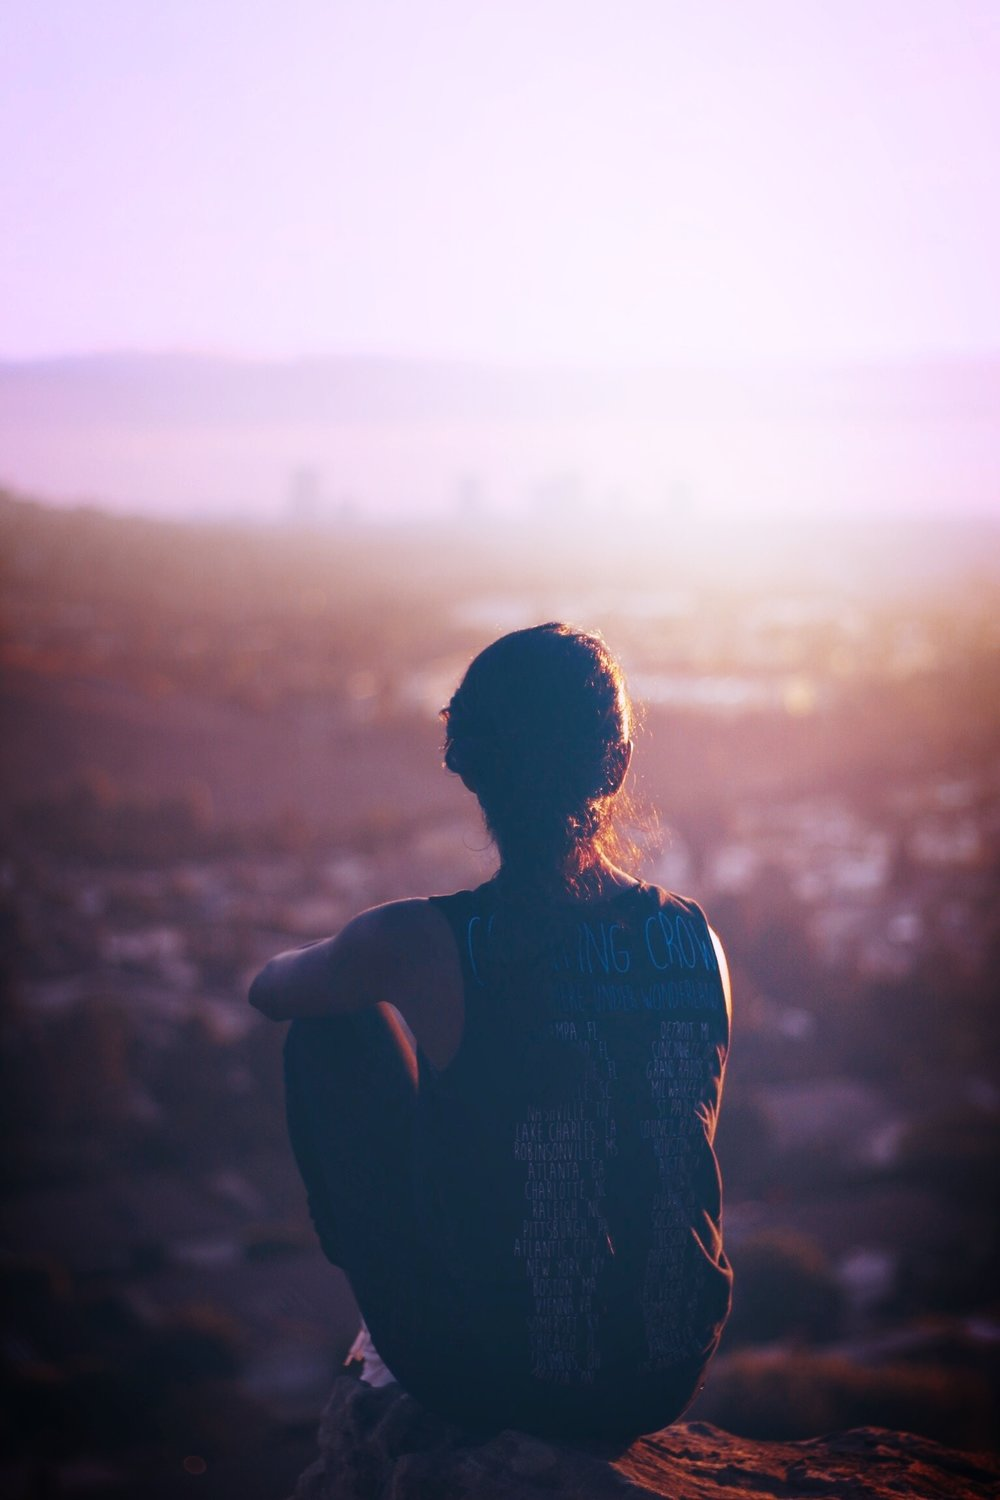 A woman sits on a low cliff overlooking the city at dusk